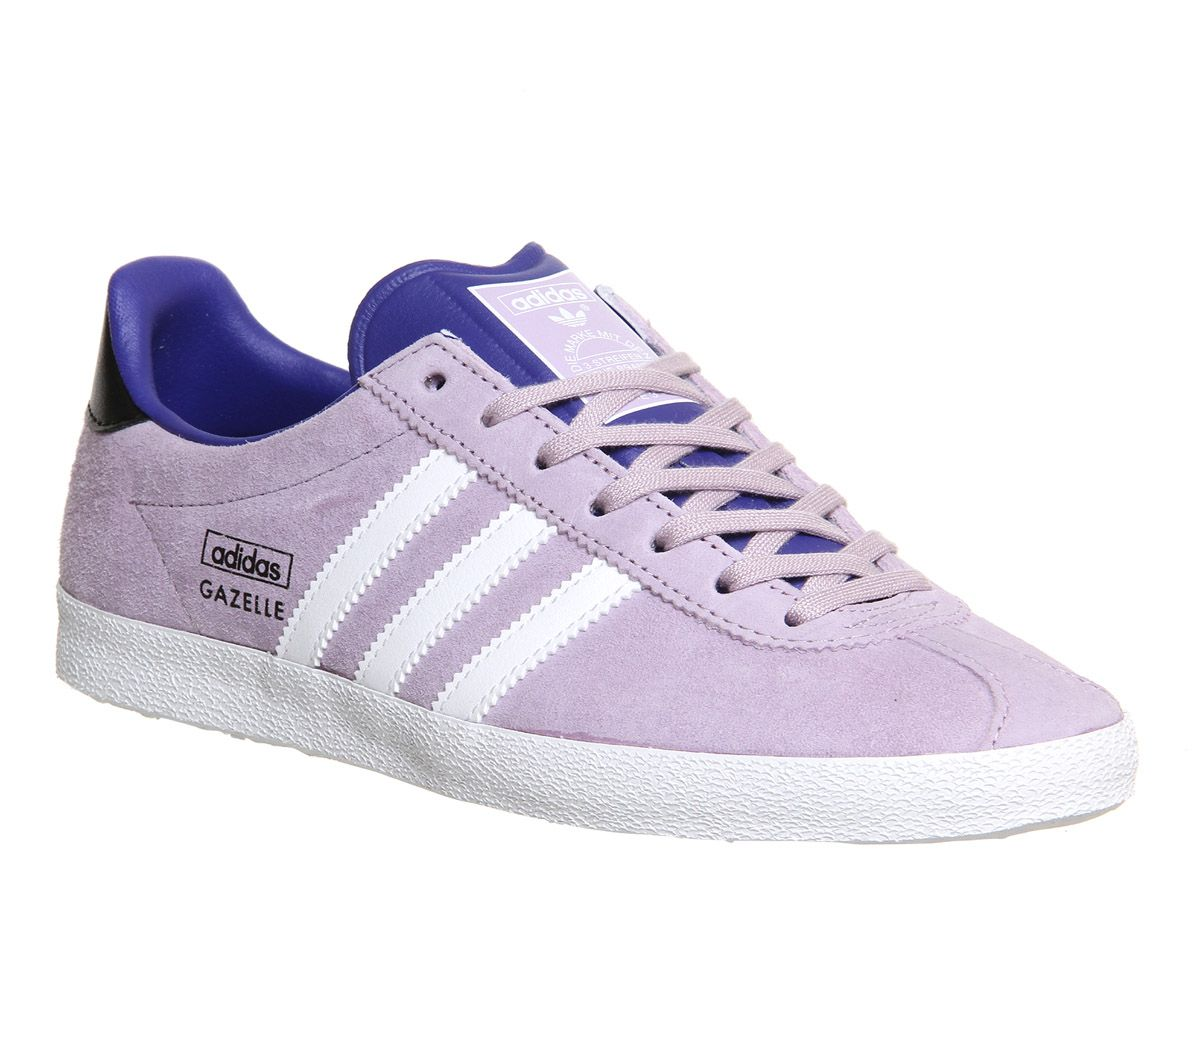 ADIDAS GAZELLE PURPLE Lavender Lace up Athletic Sneakers